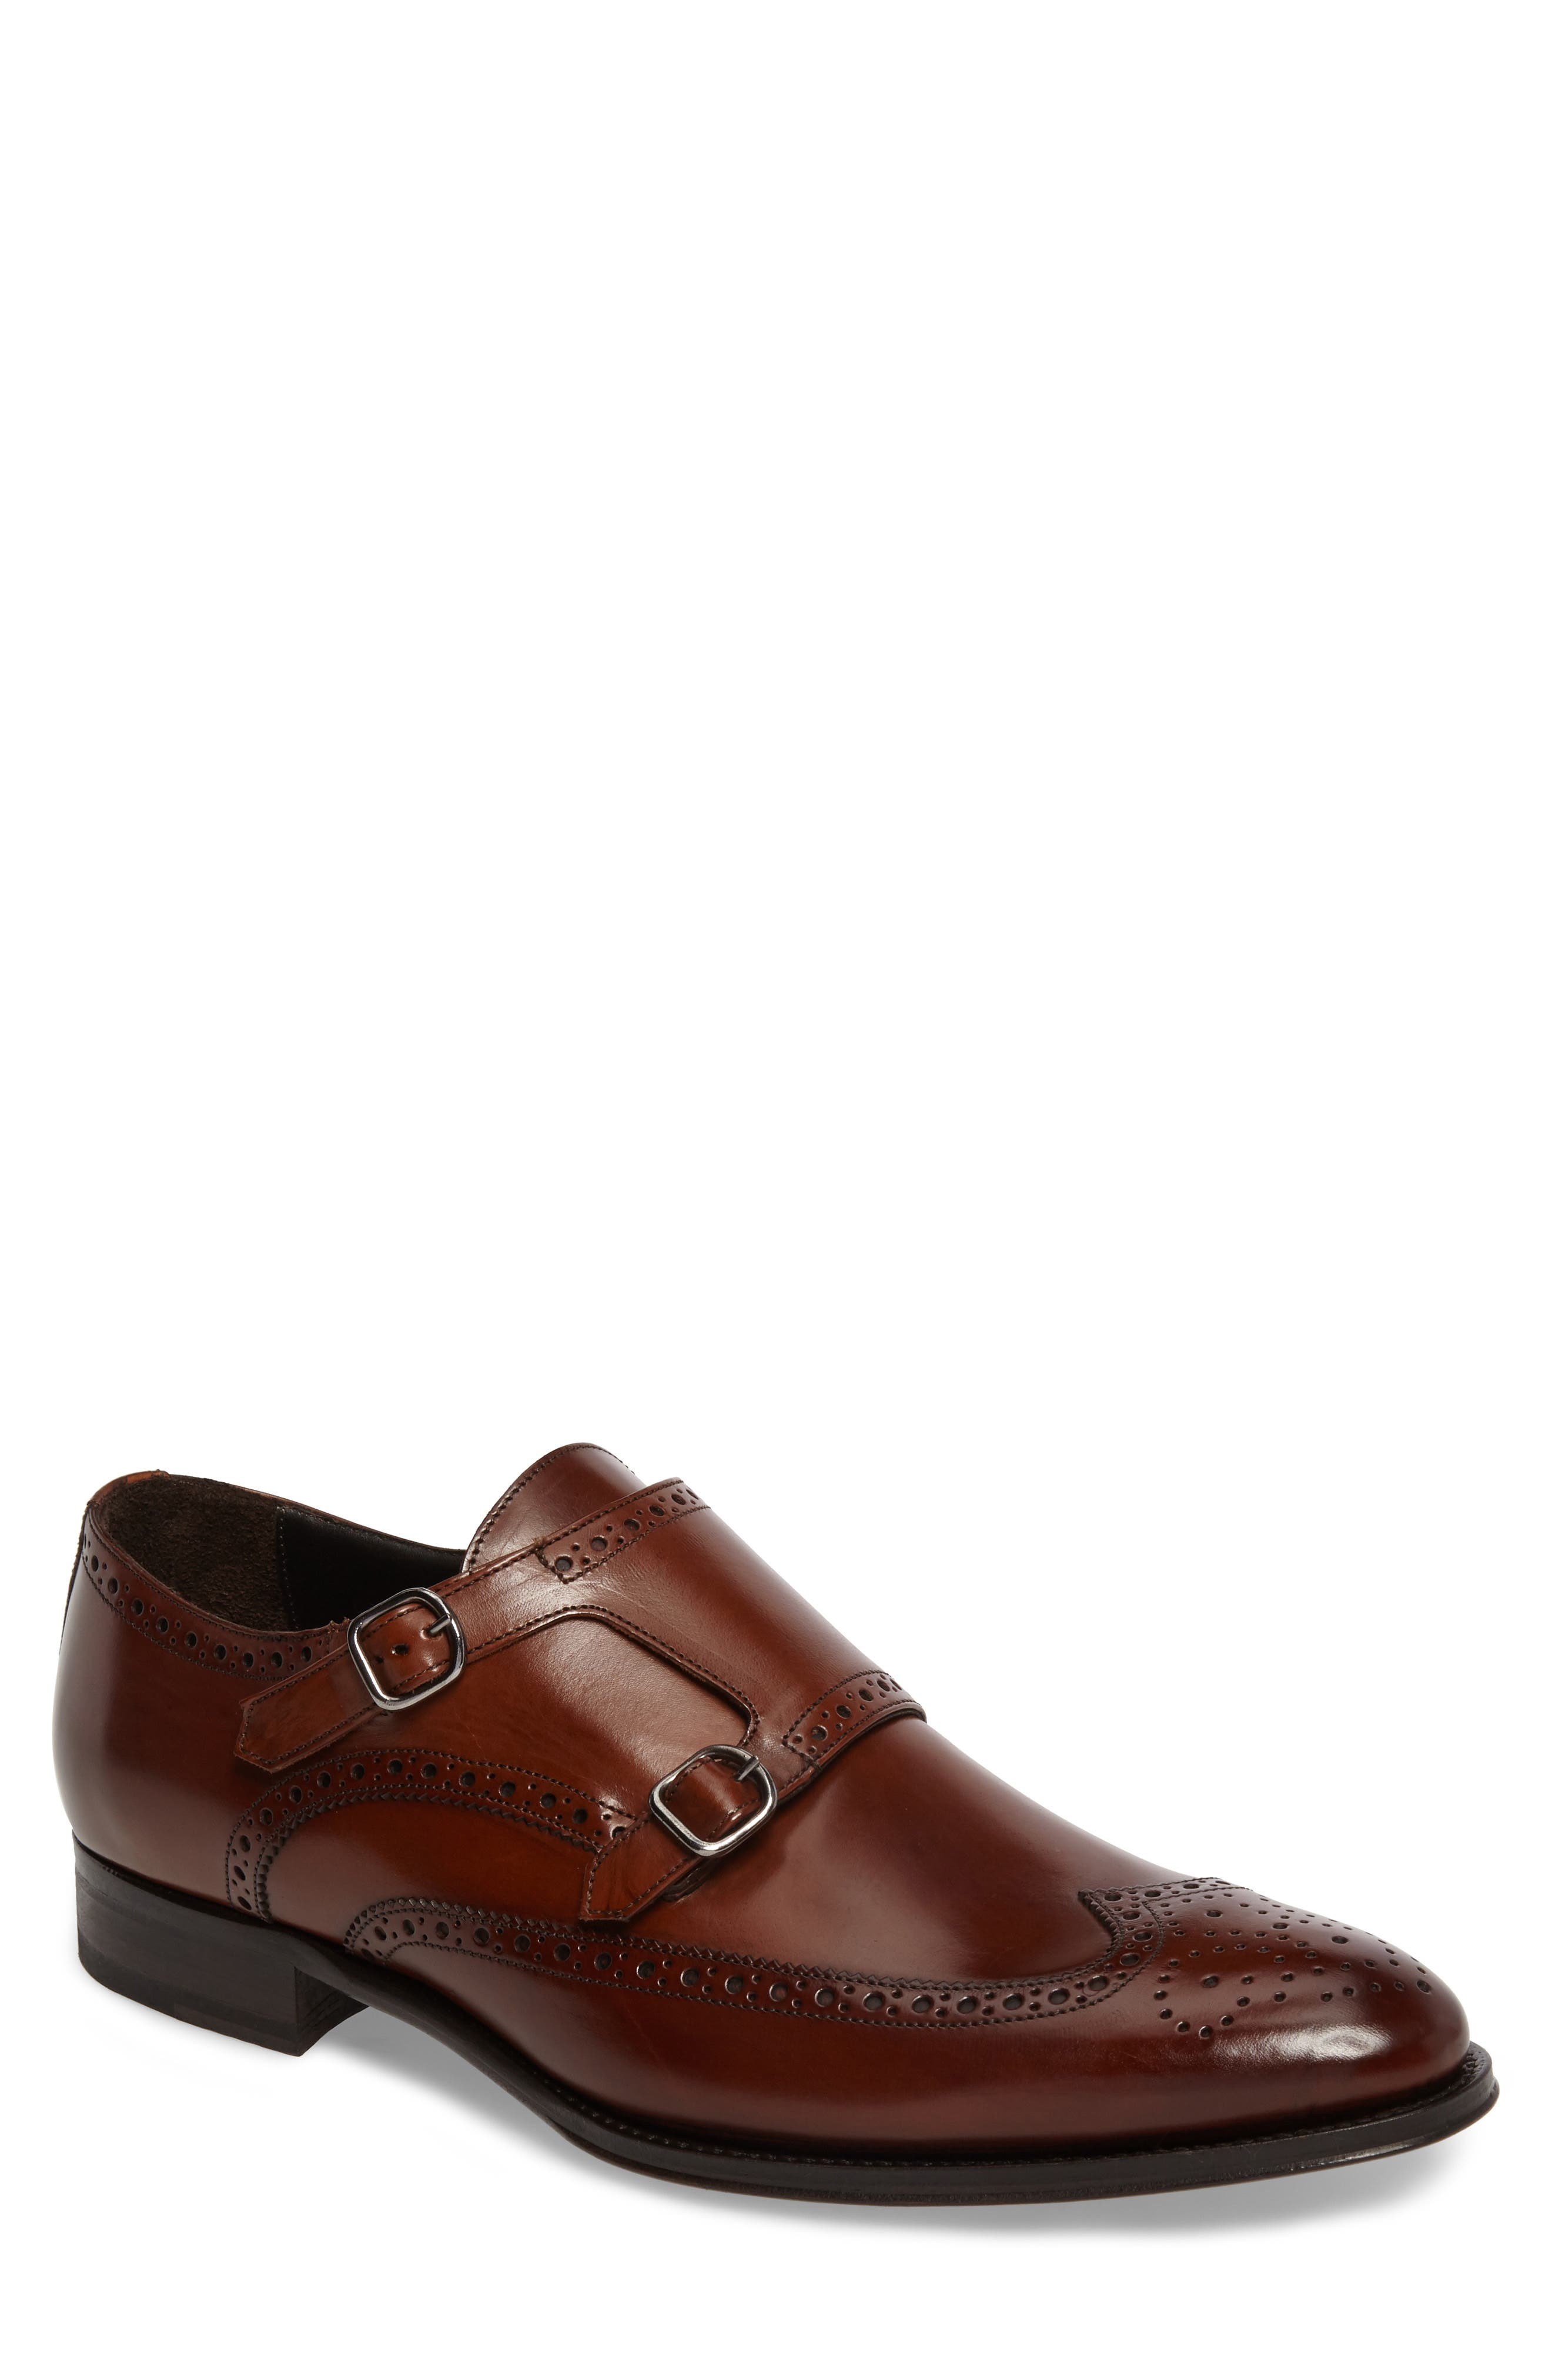 Main Image - To Boot New York Pike Double Monk Strap Shoe (Men)